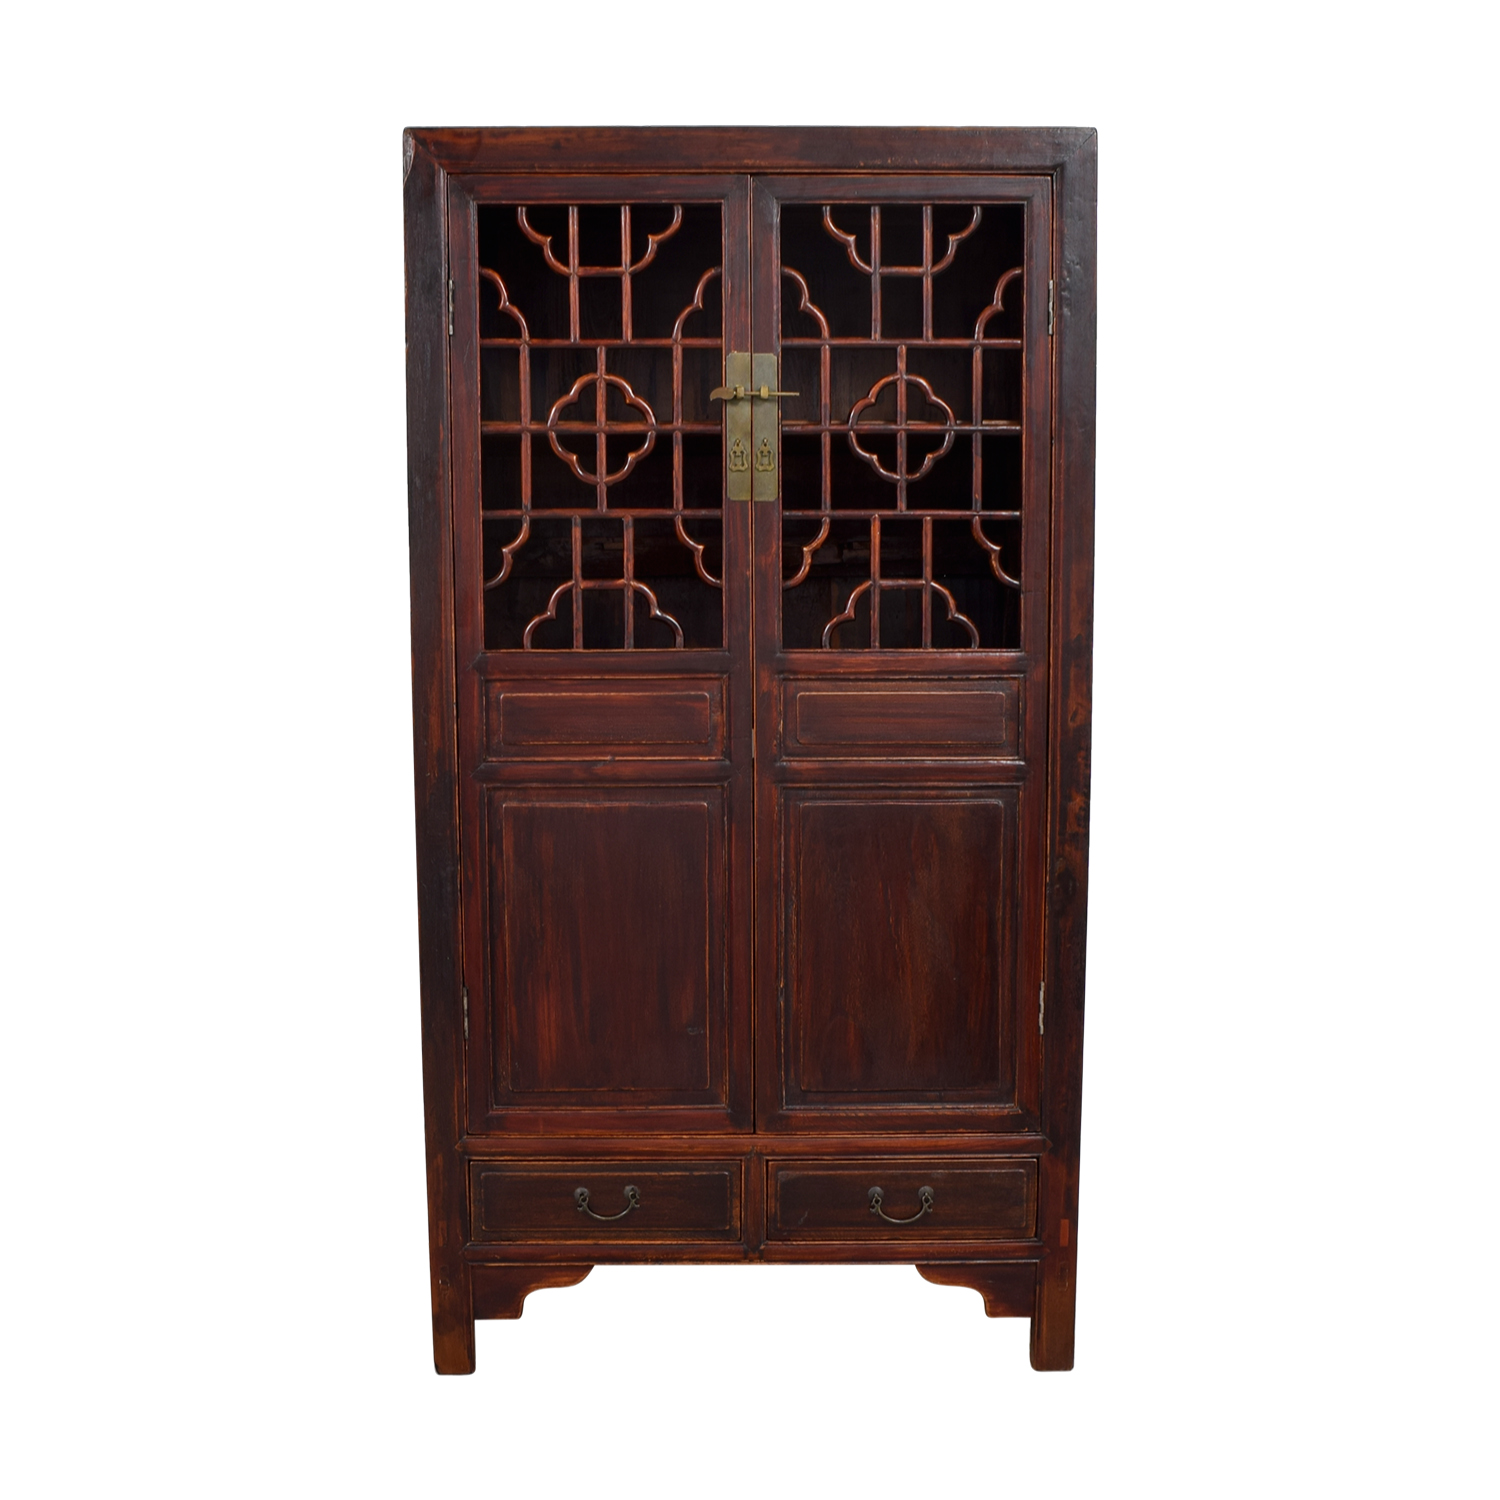 Antique Chinese Carved Wood Armoire nj